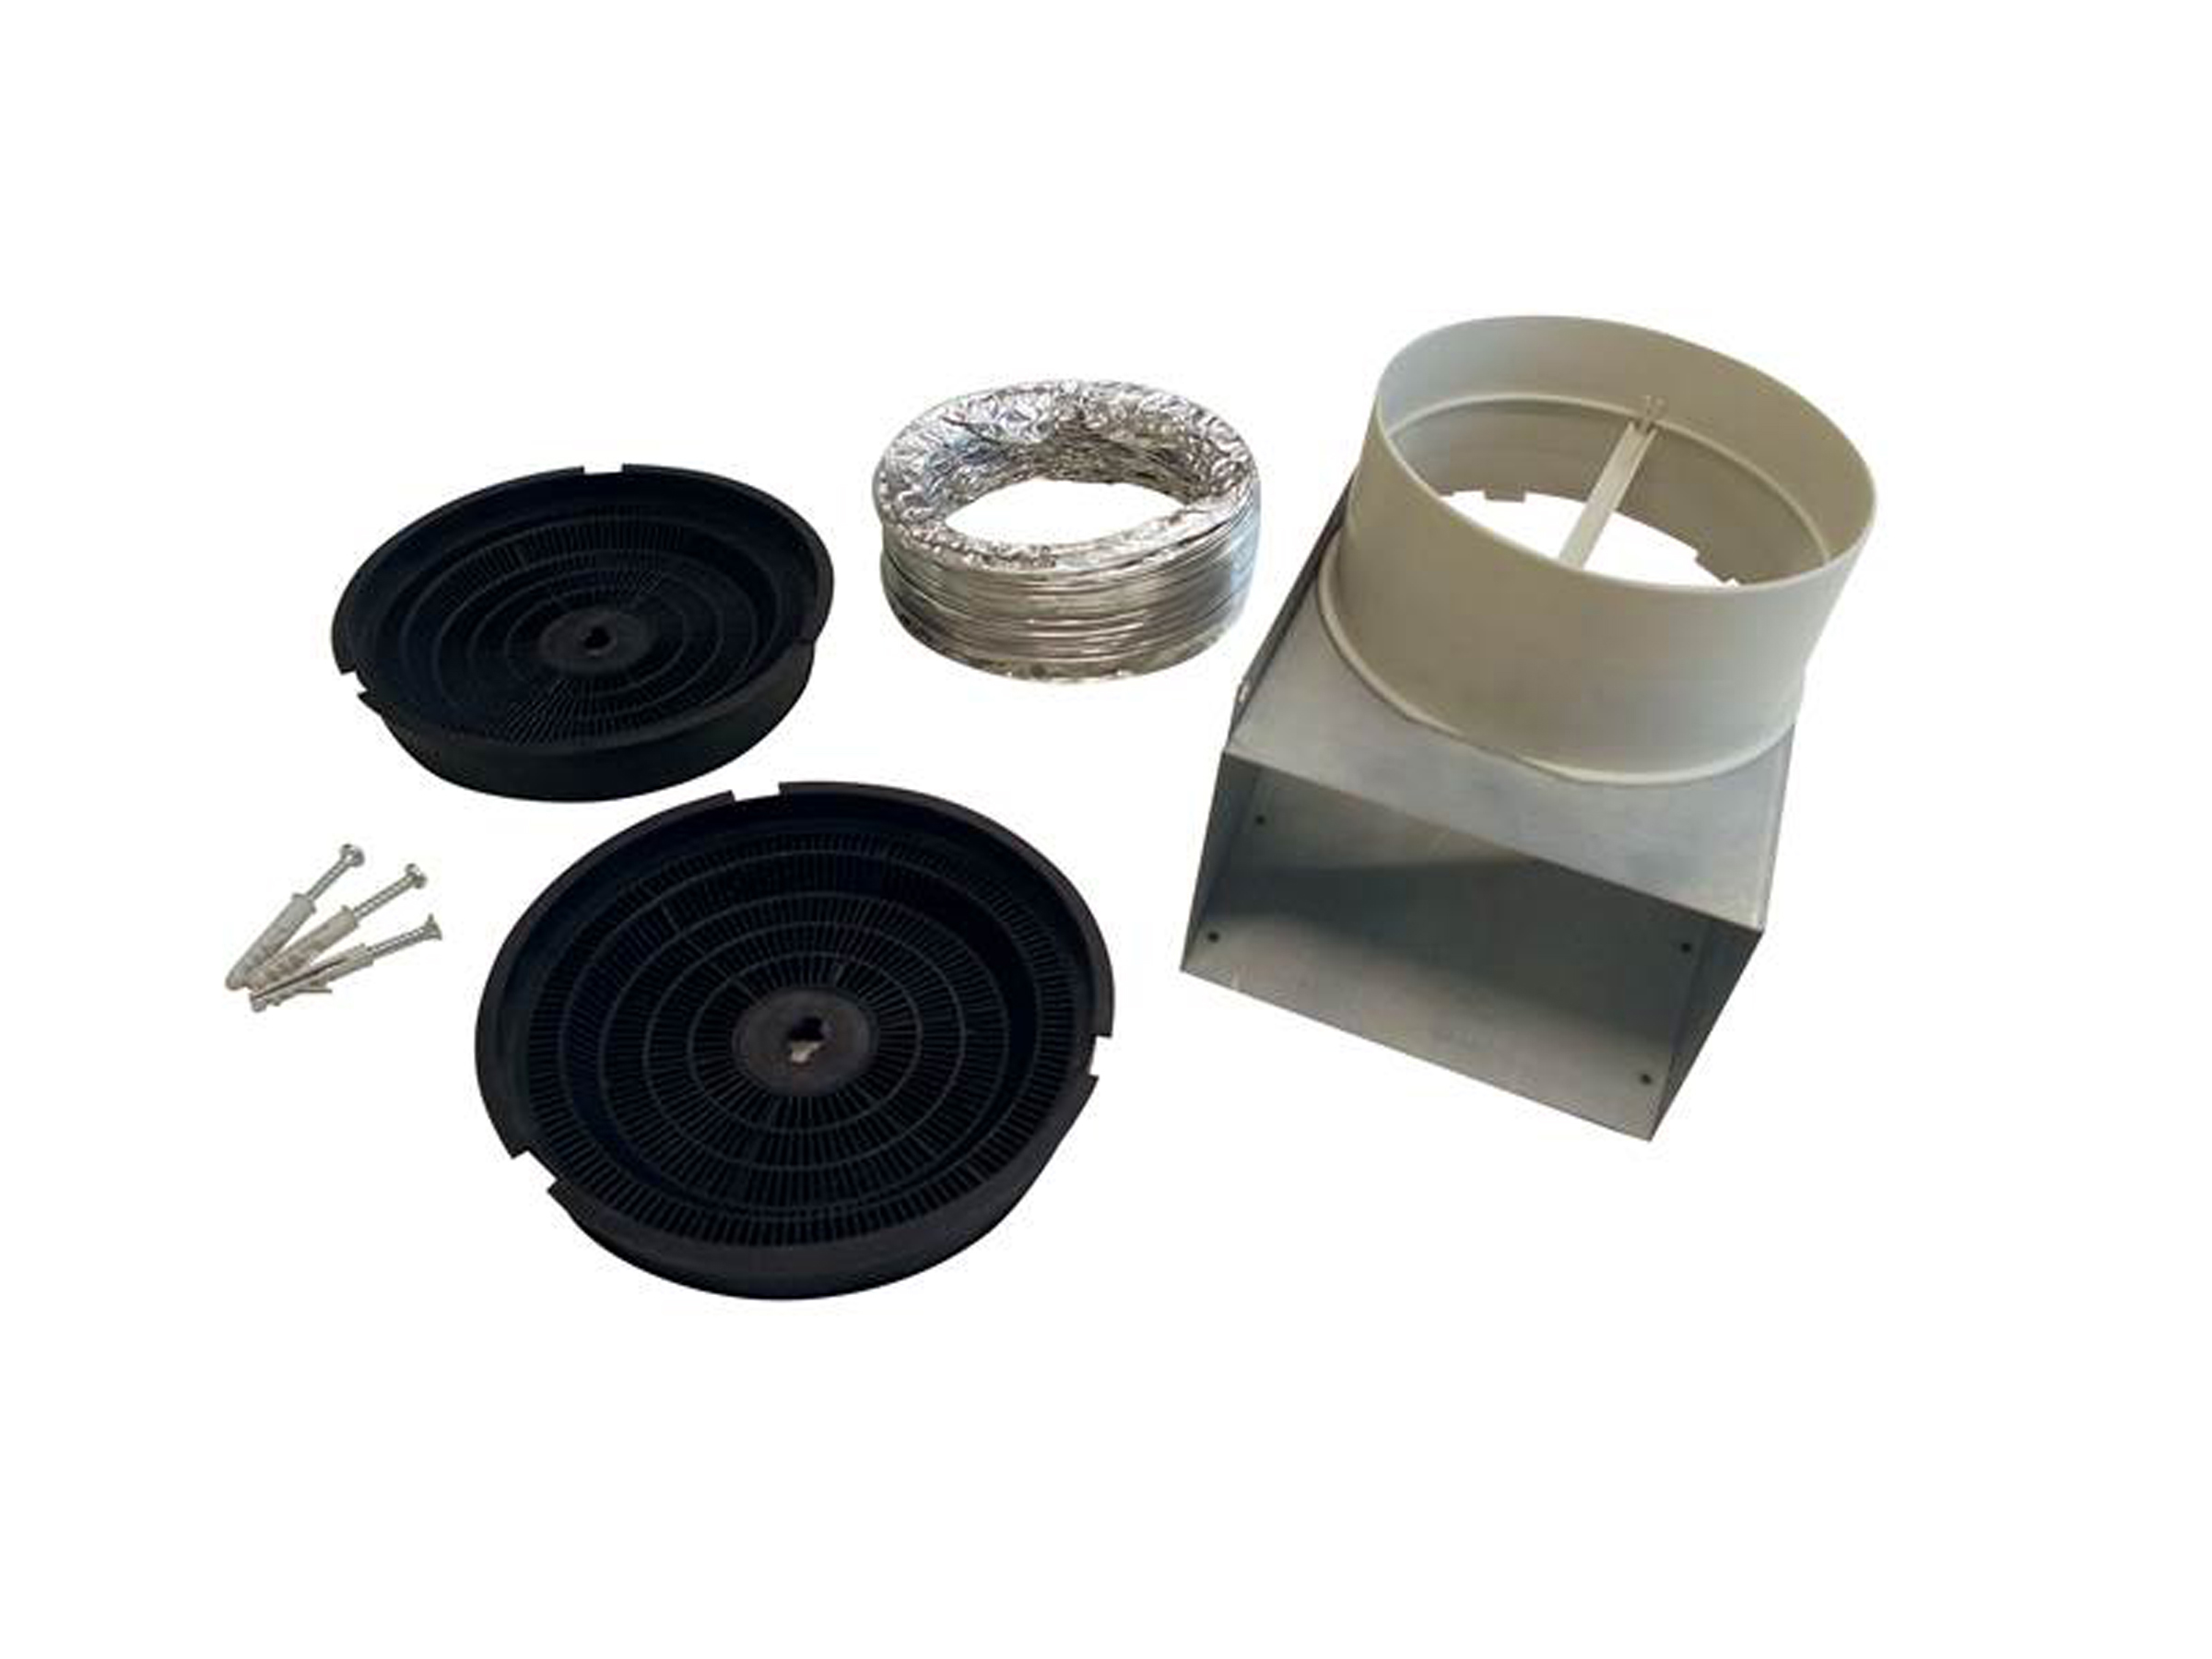 Recirculation Kit for model Hoods KU PRO/14, CON/14 and HER/14 | Bertazzoni - Stainless